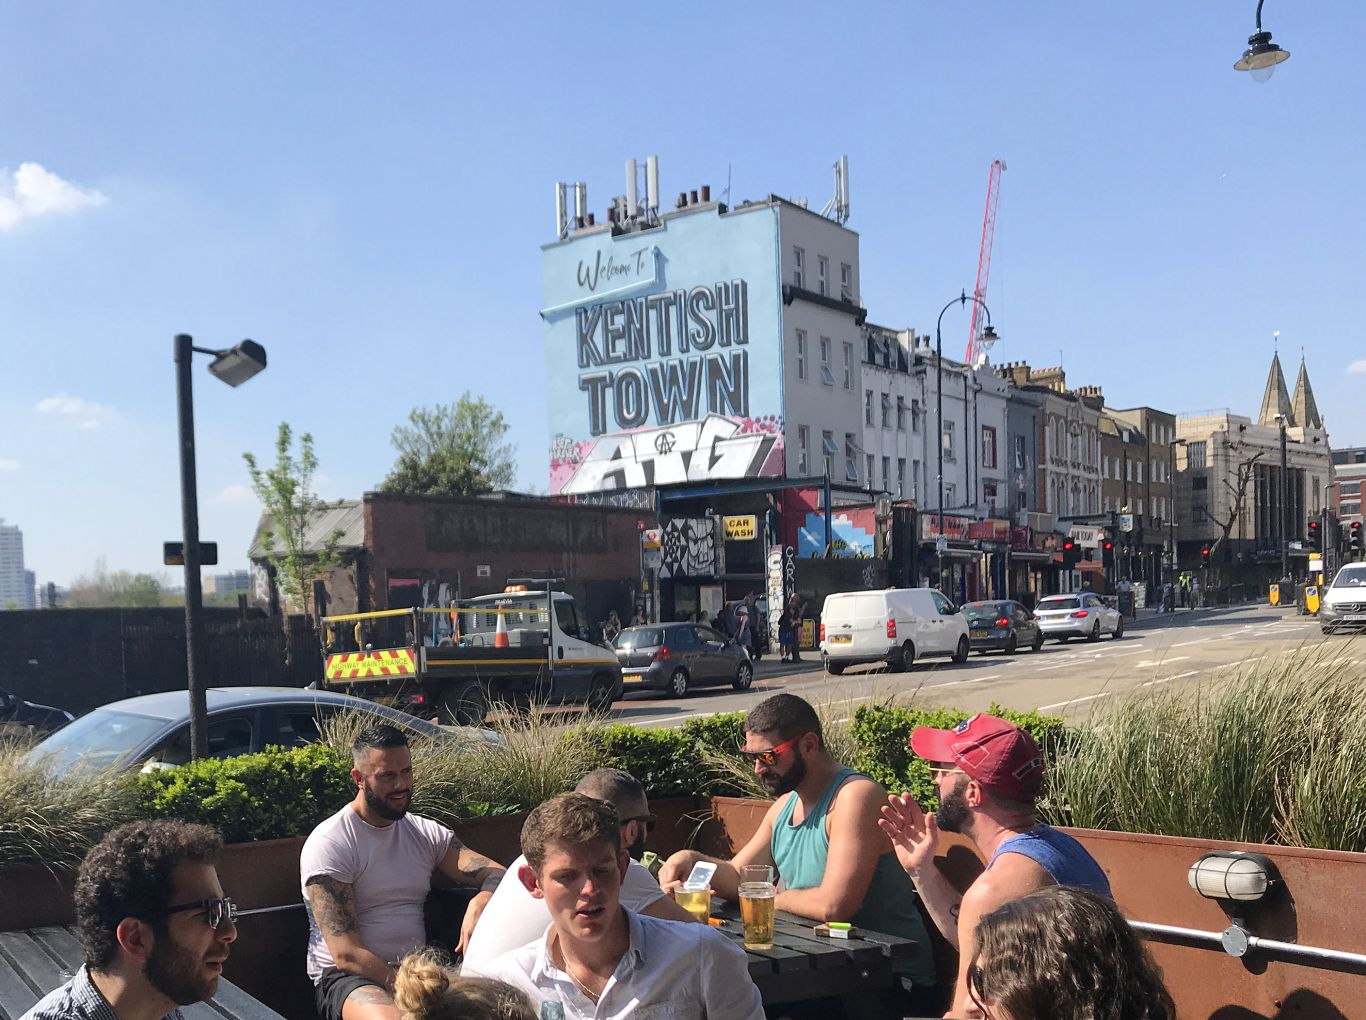 People sitting at pub table with Kentish Town mural in the background